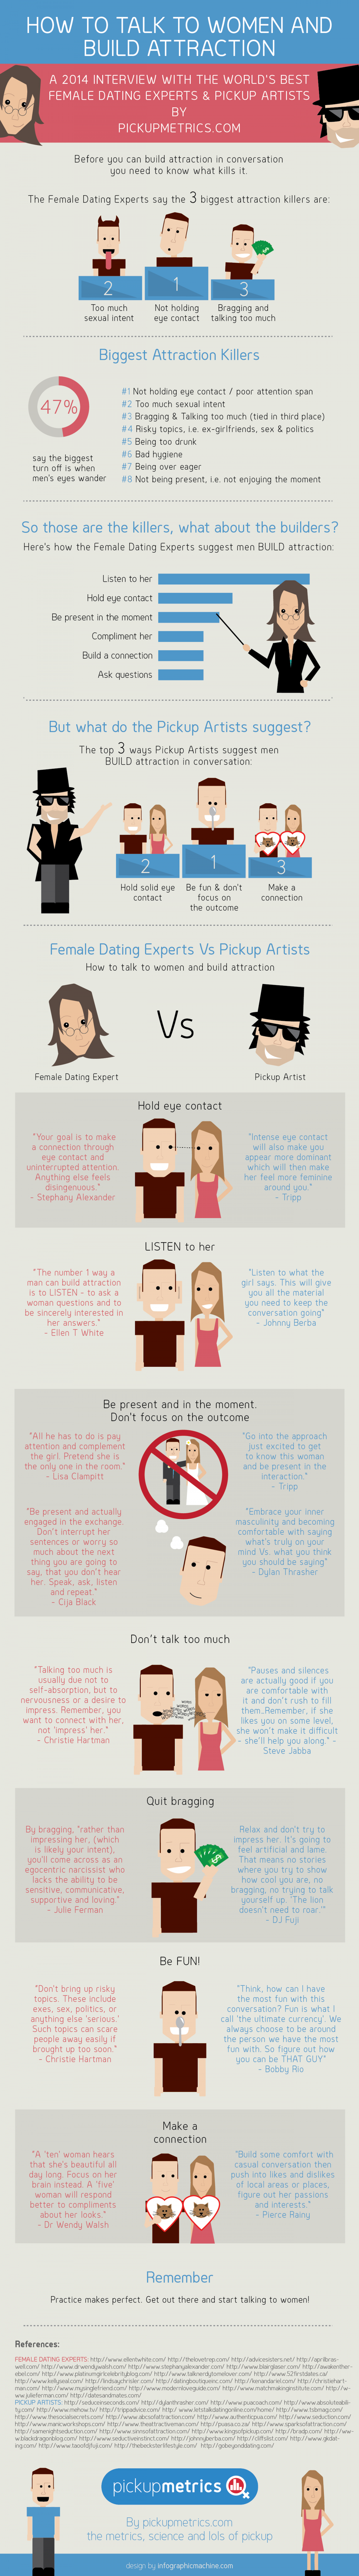 How To Talk To Women And Build Attraction Infographic